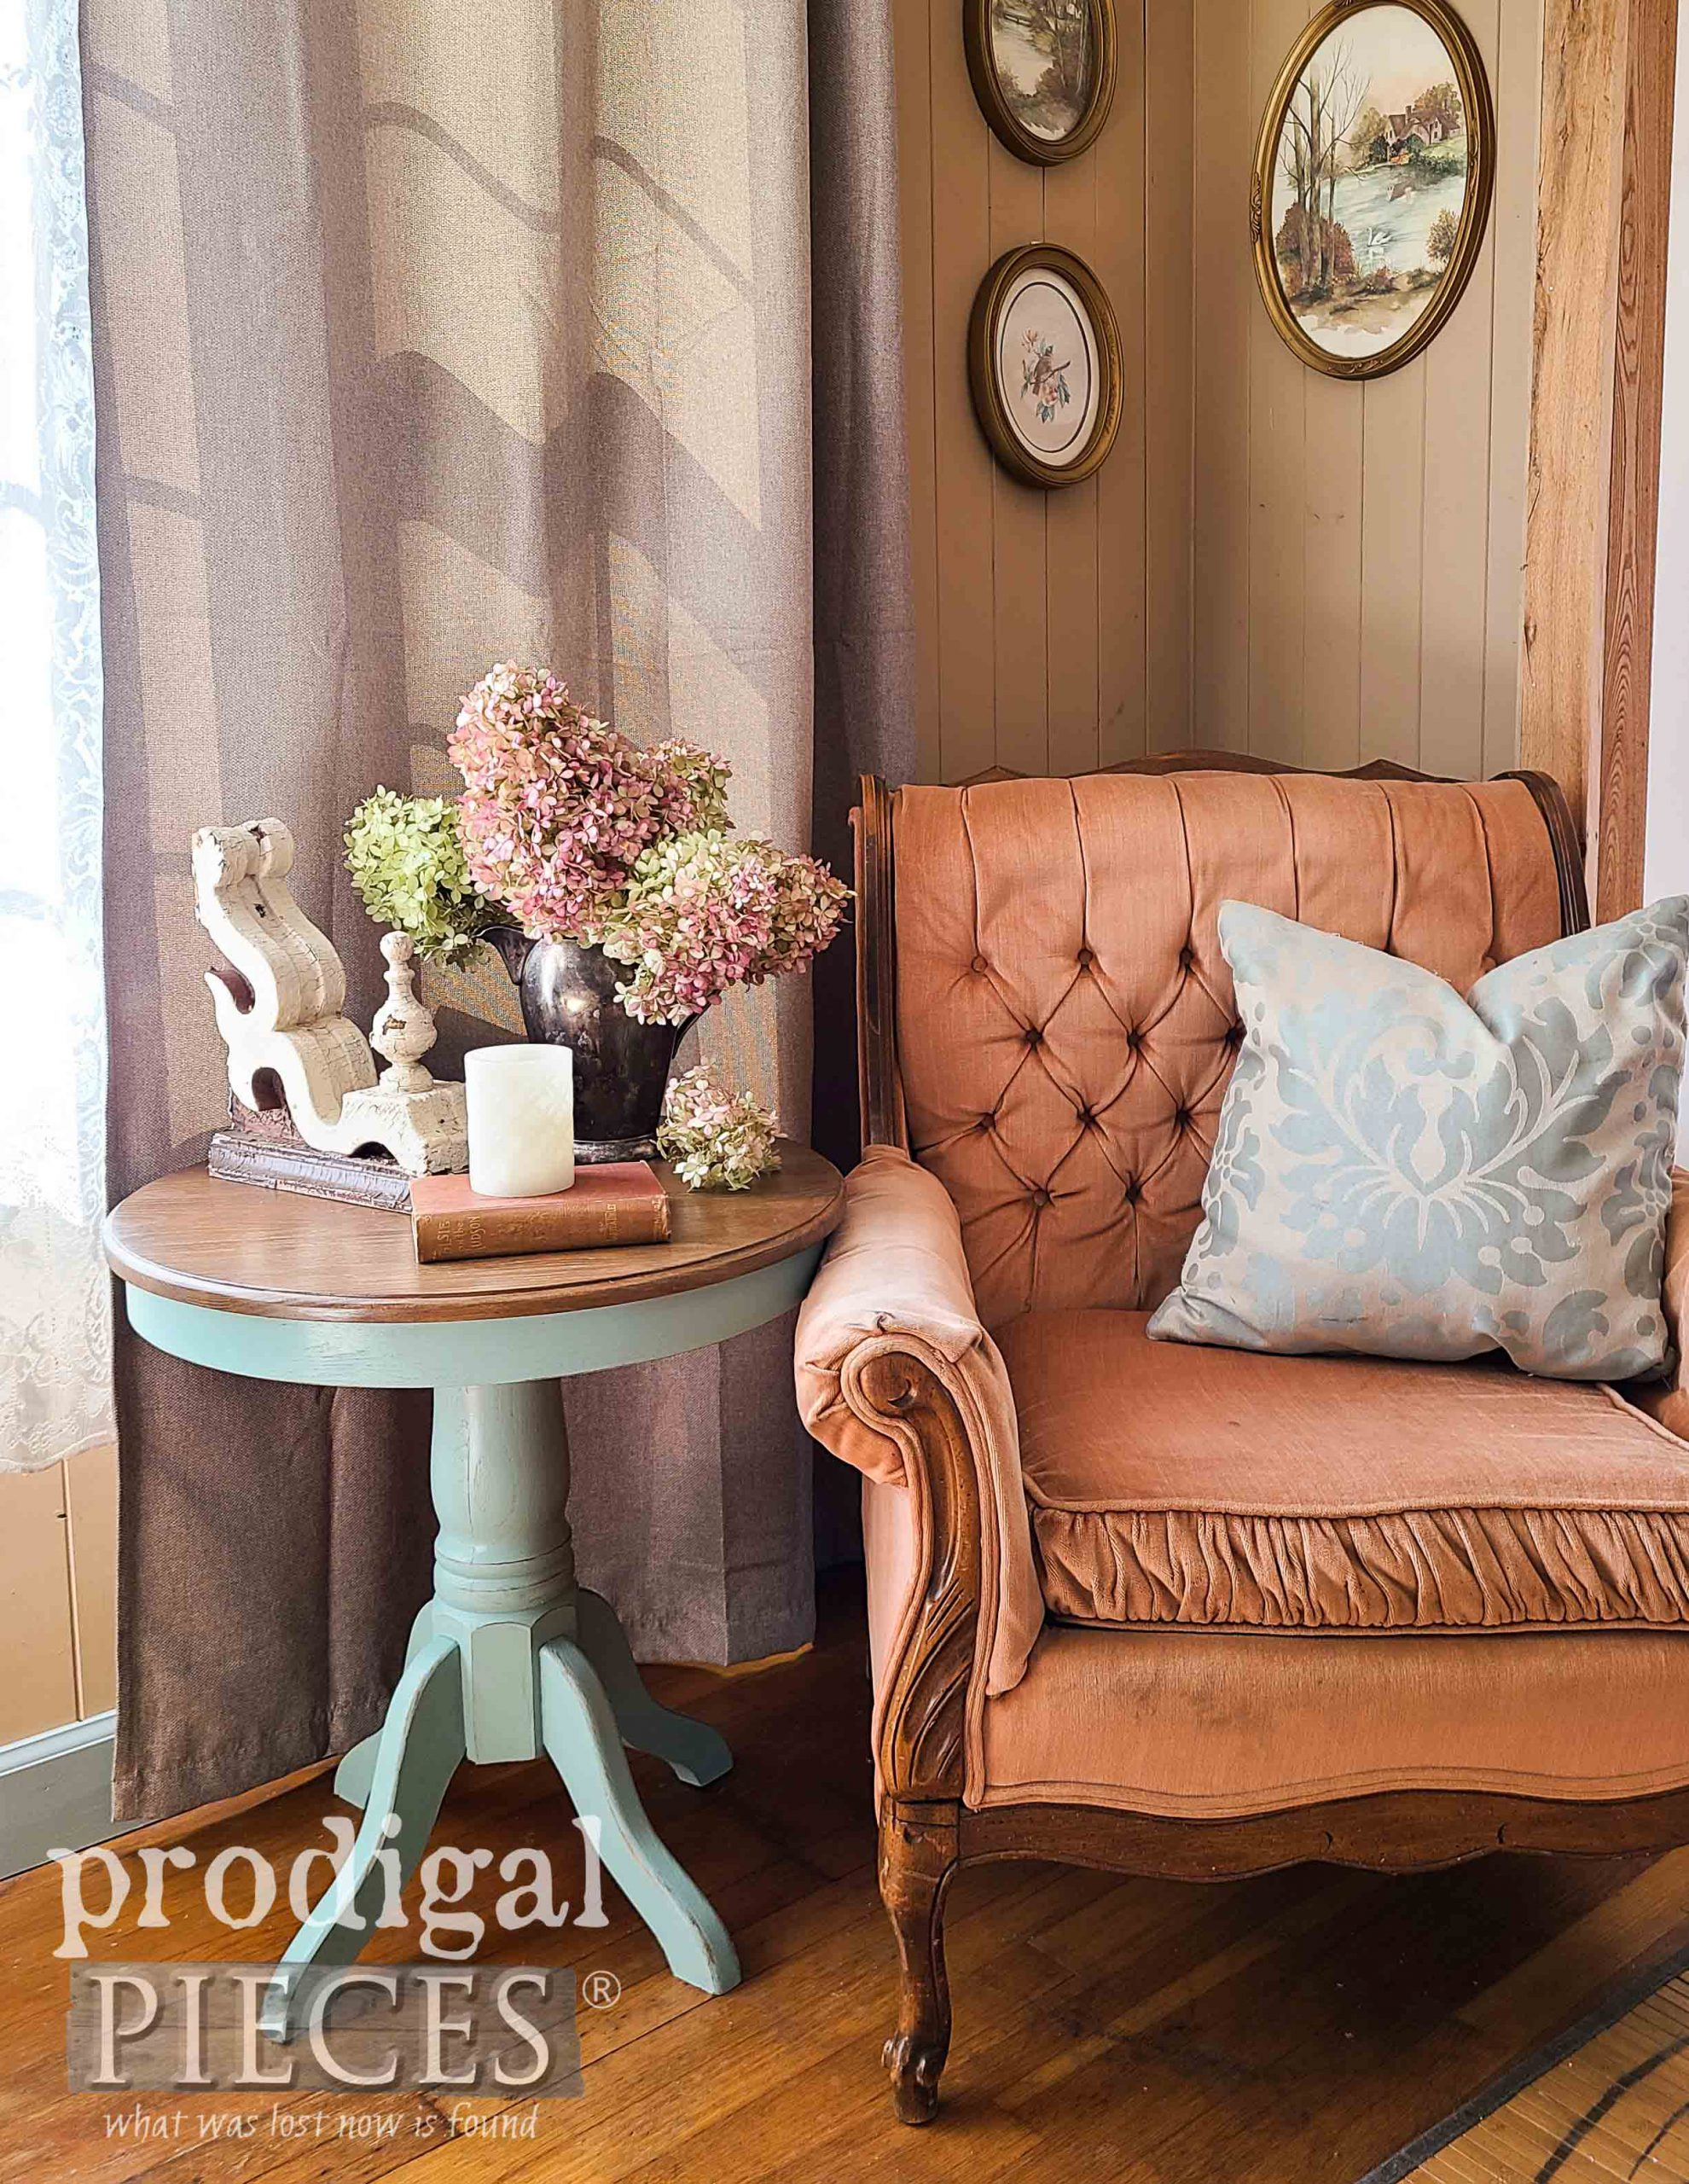 Vintage Style Home with DIY Decor by Larissa of Prodigal Pieces | prodigalpieces.com #prodigalpieces #vintage #home #furniture #homedecor